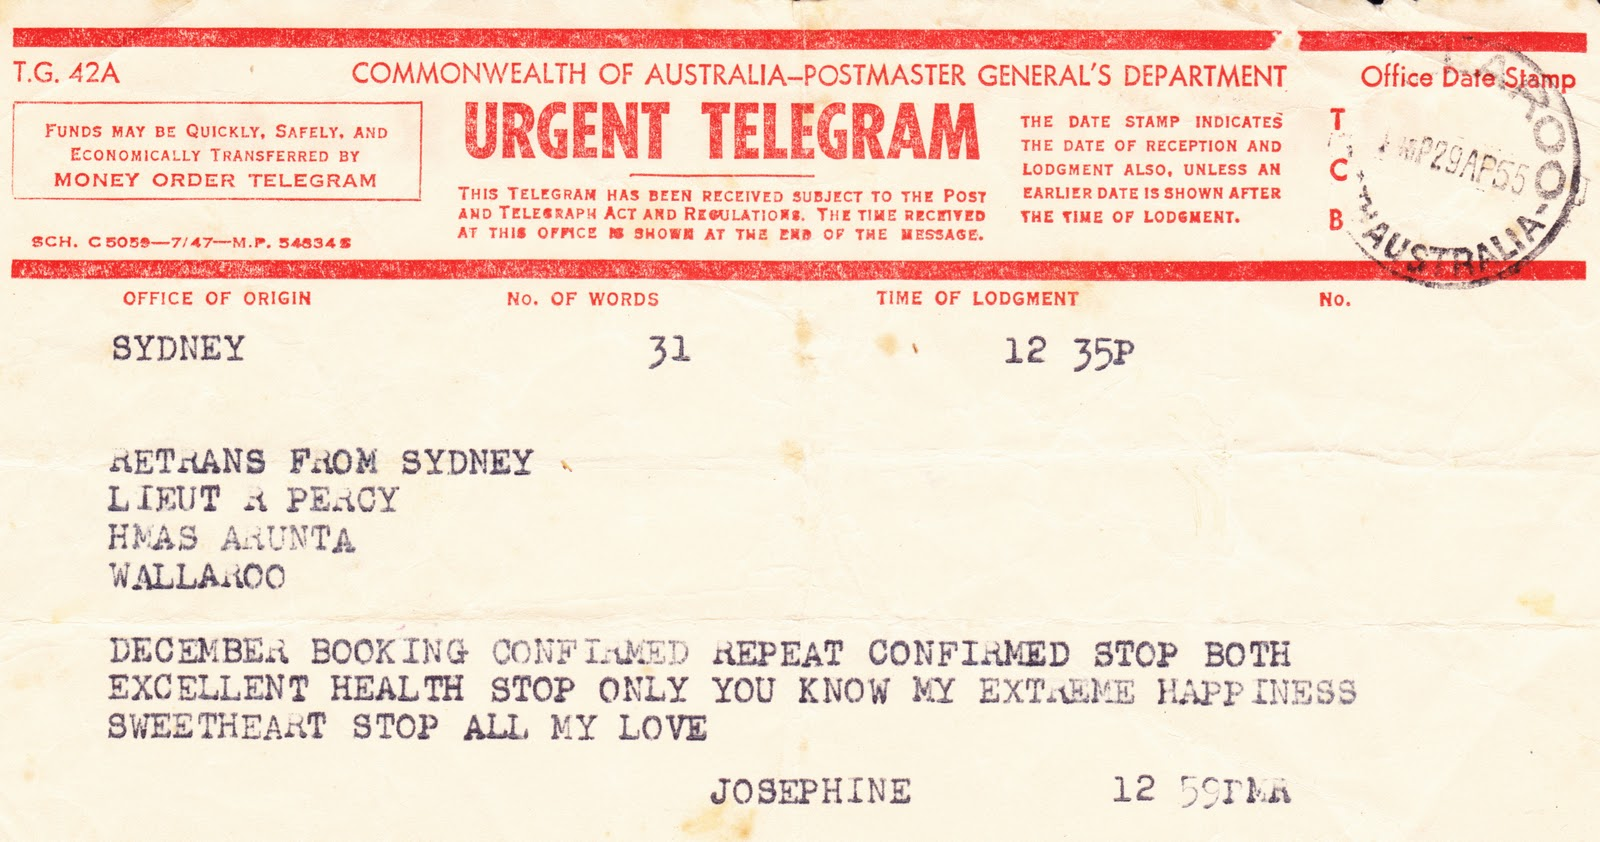 Telegrams, the text message before mobile phones